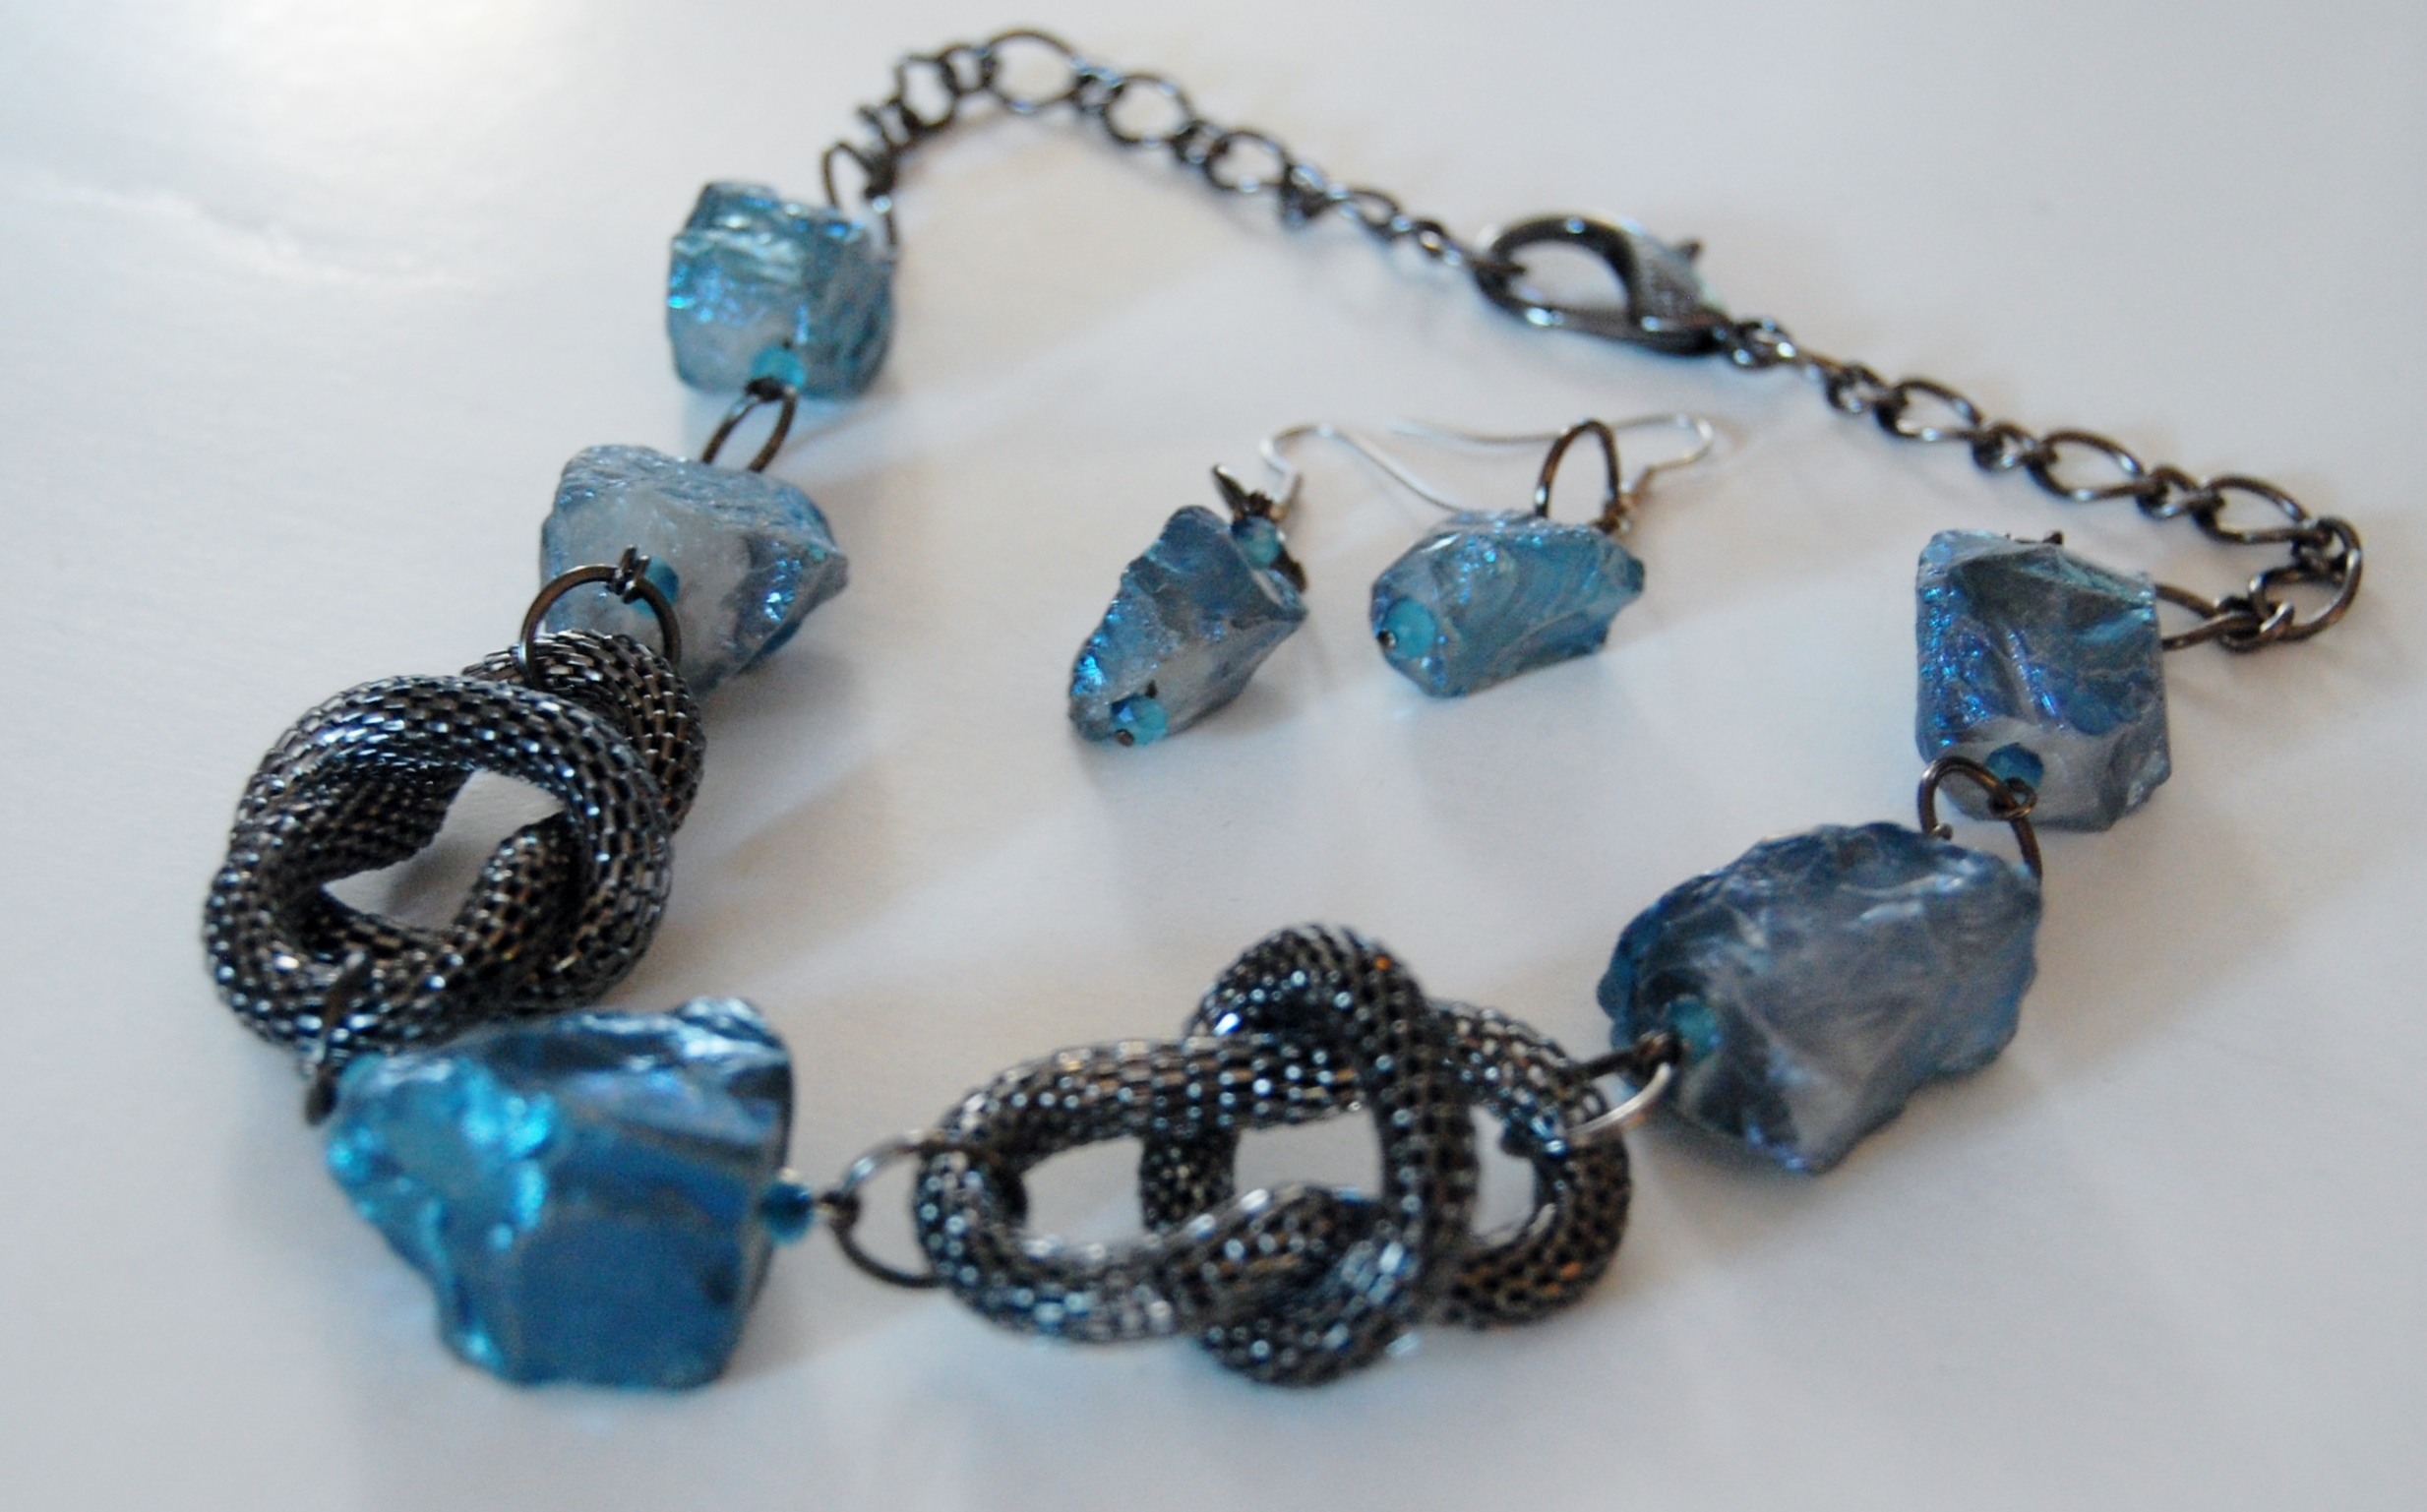 RAW BLUE QUARTZ WITH GUN METAL MESH LOOPS NECKLACE SET